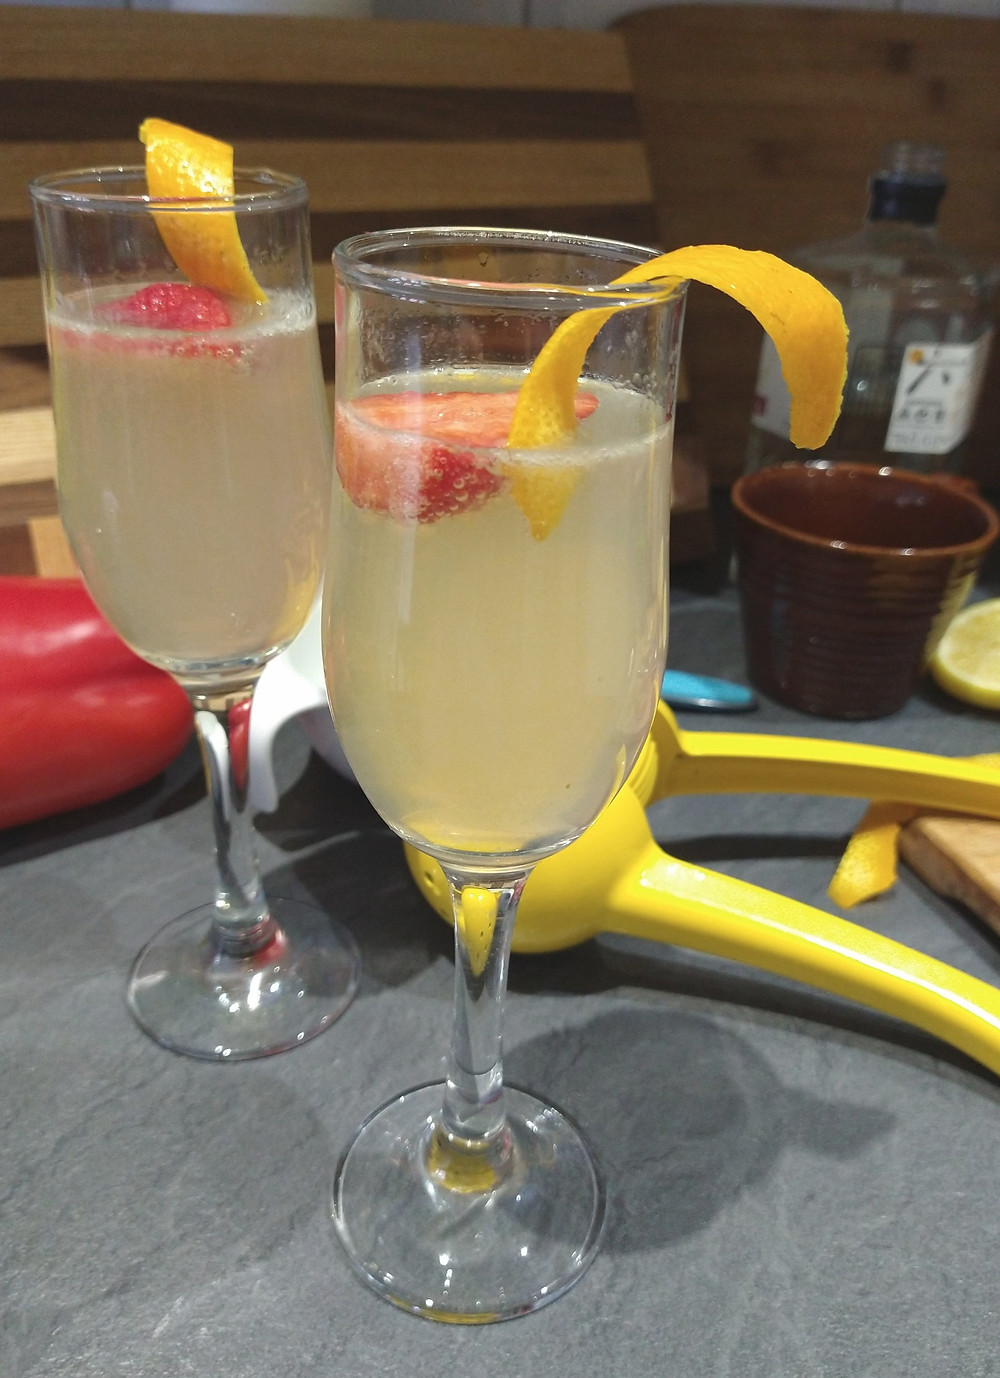 Picture of the French 75 cocktail, served and garnished with a strawberry and orange twist